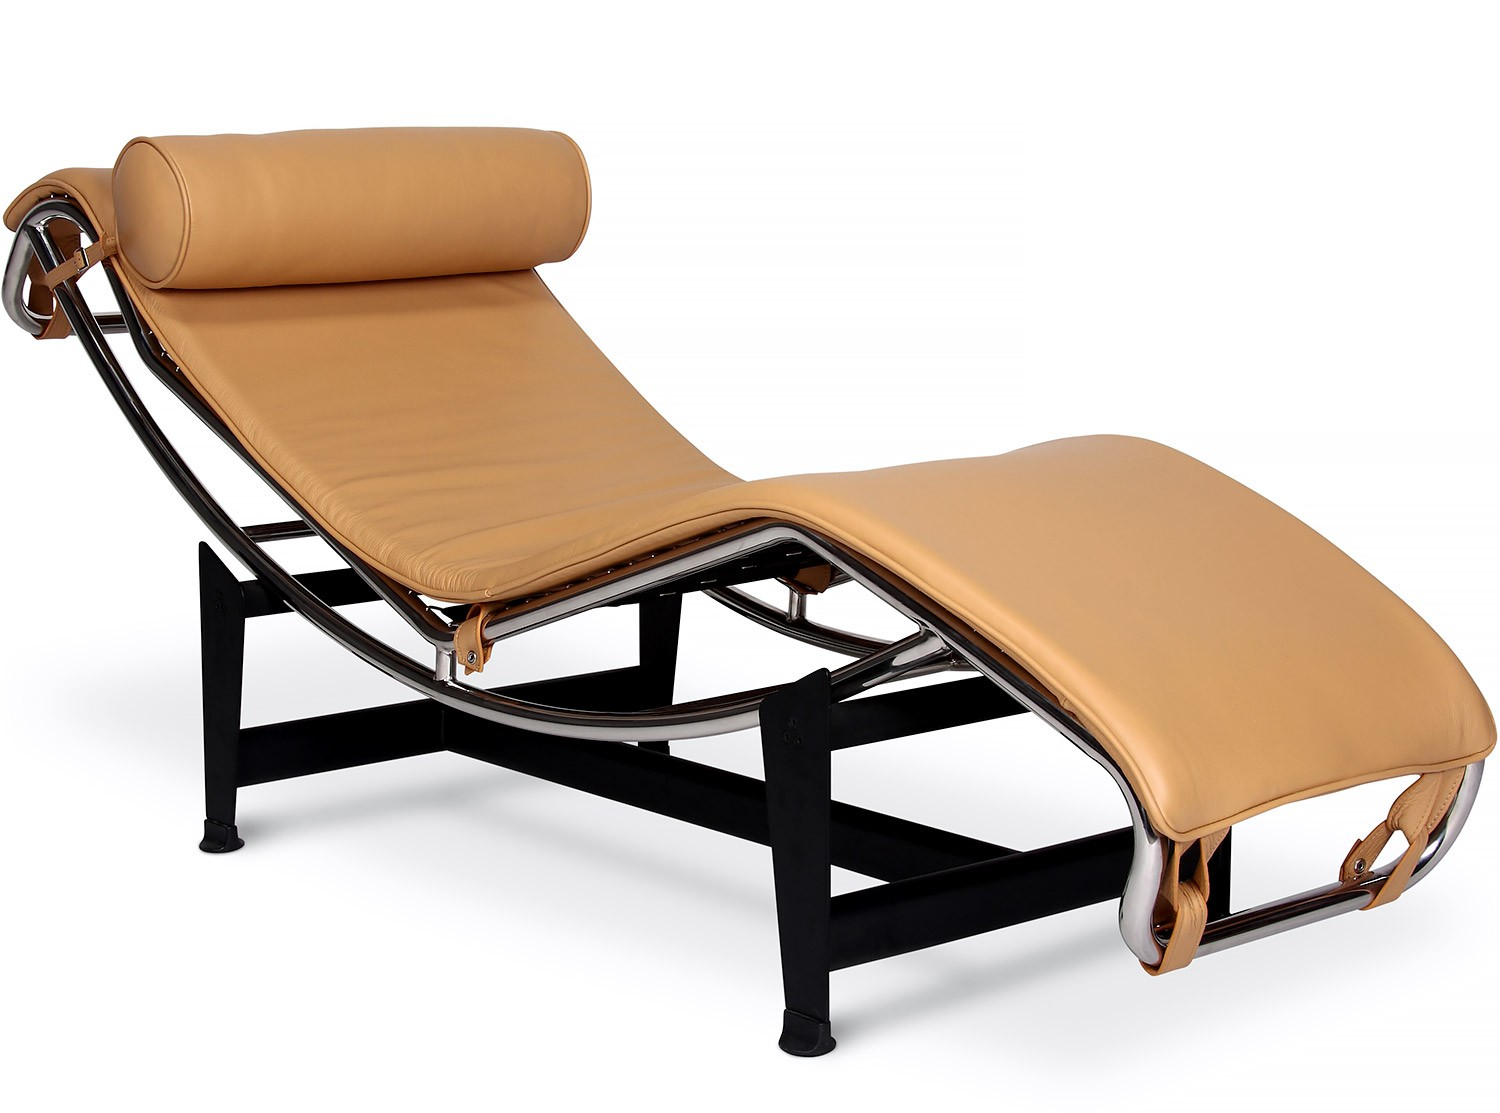 Le corbusier lc4 chaise longue platinum replica - Chaise longue le corbusier occasion ...